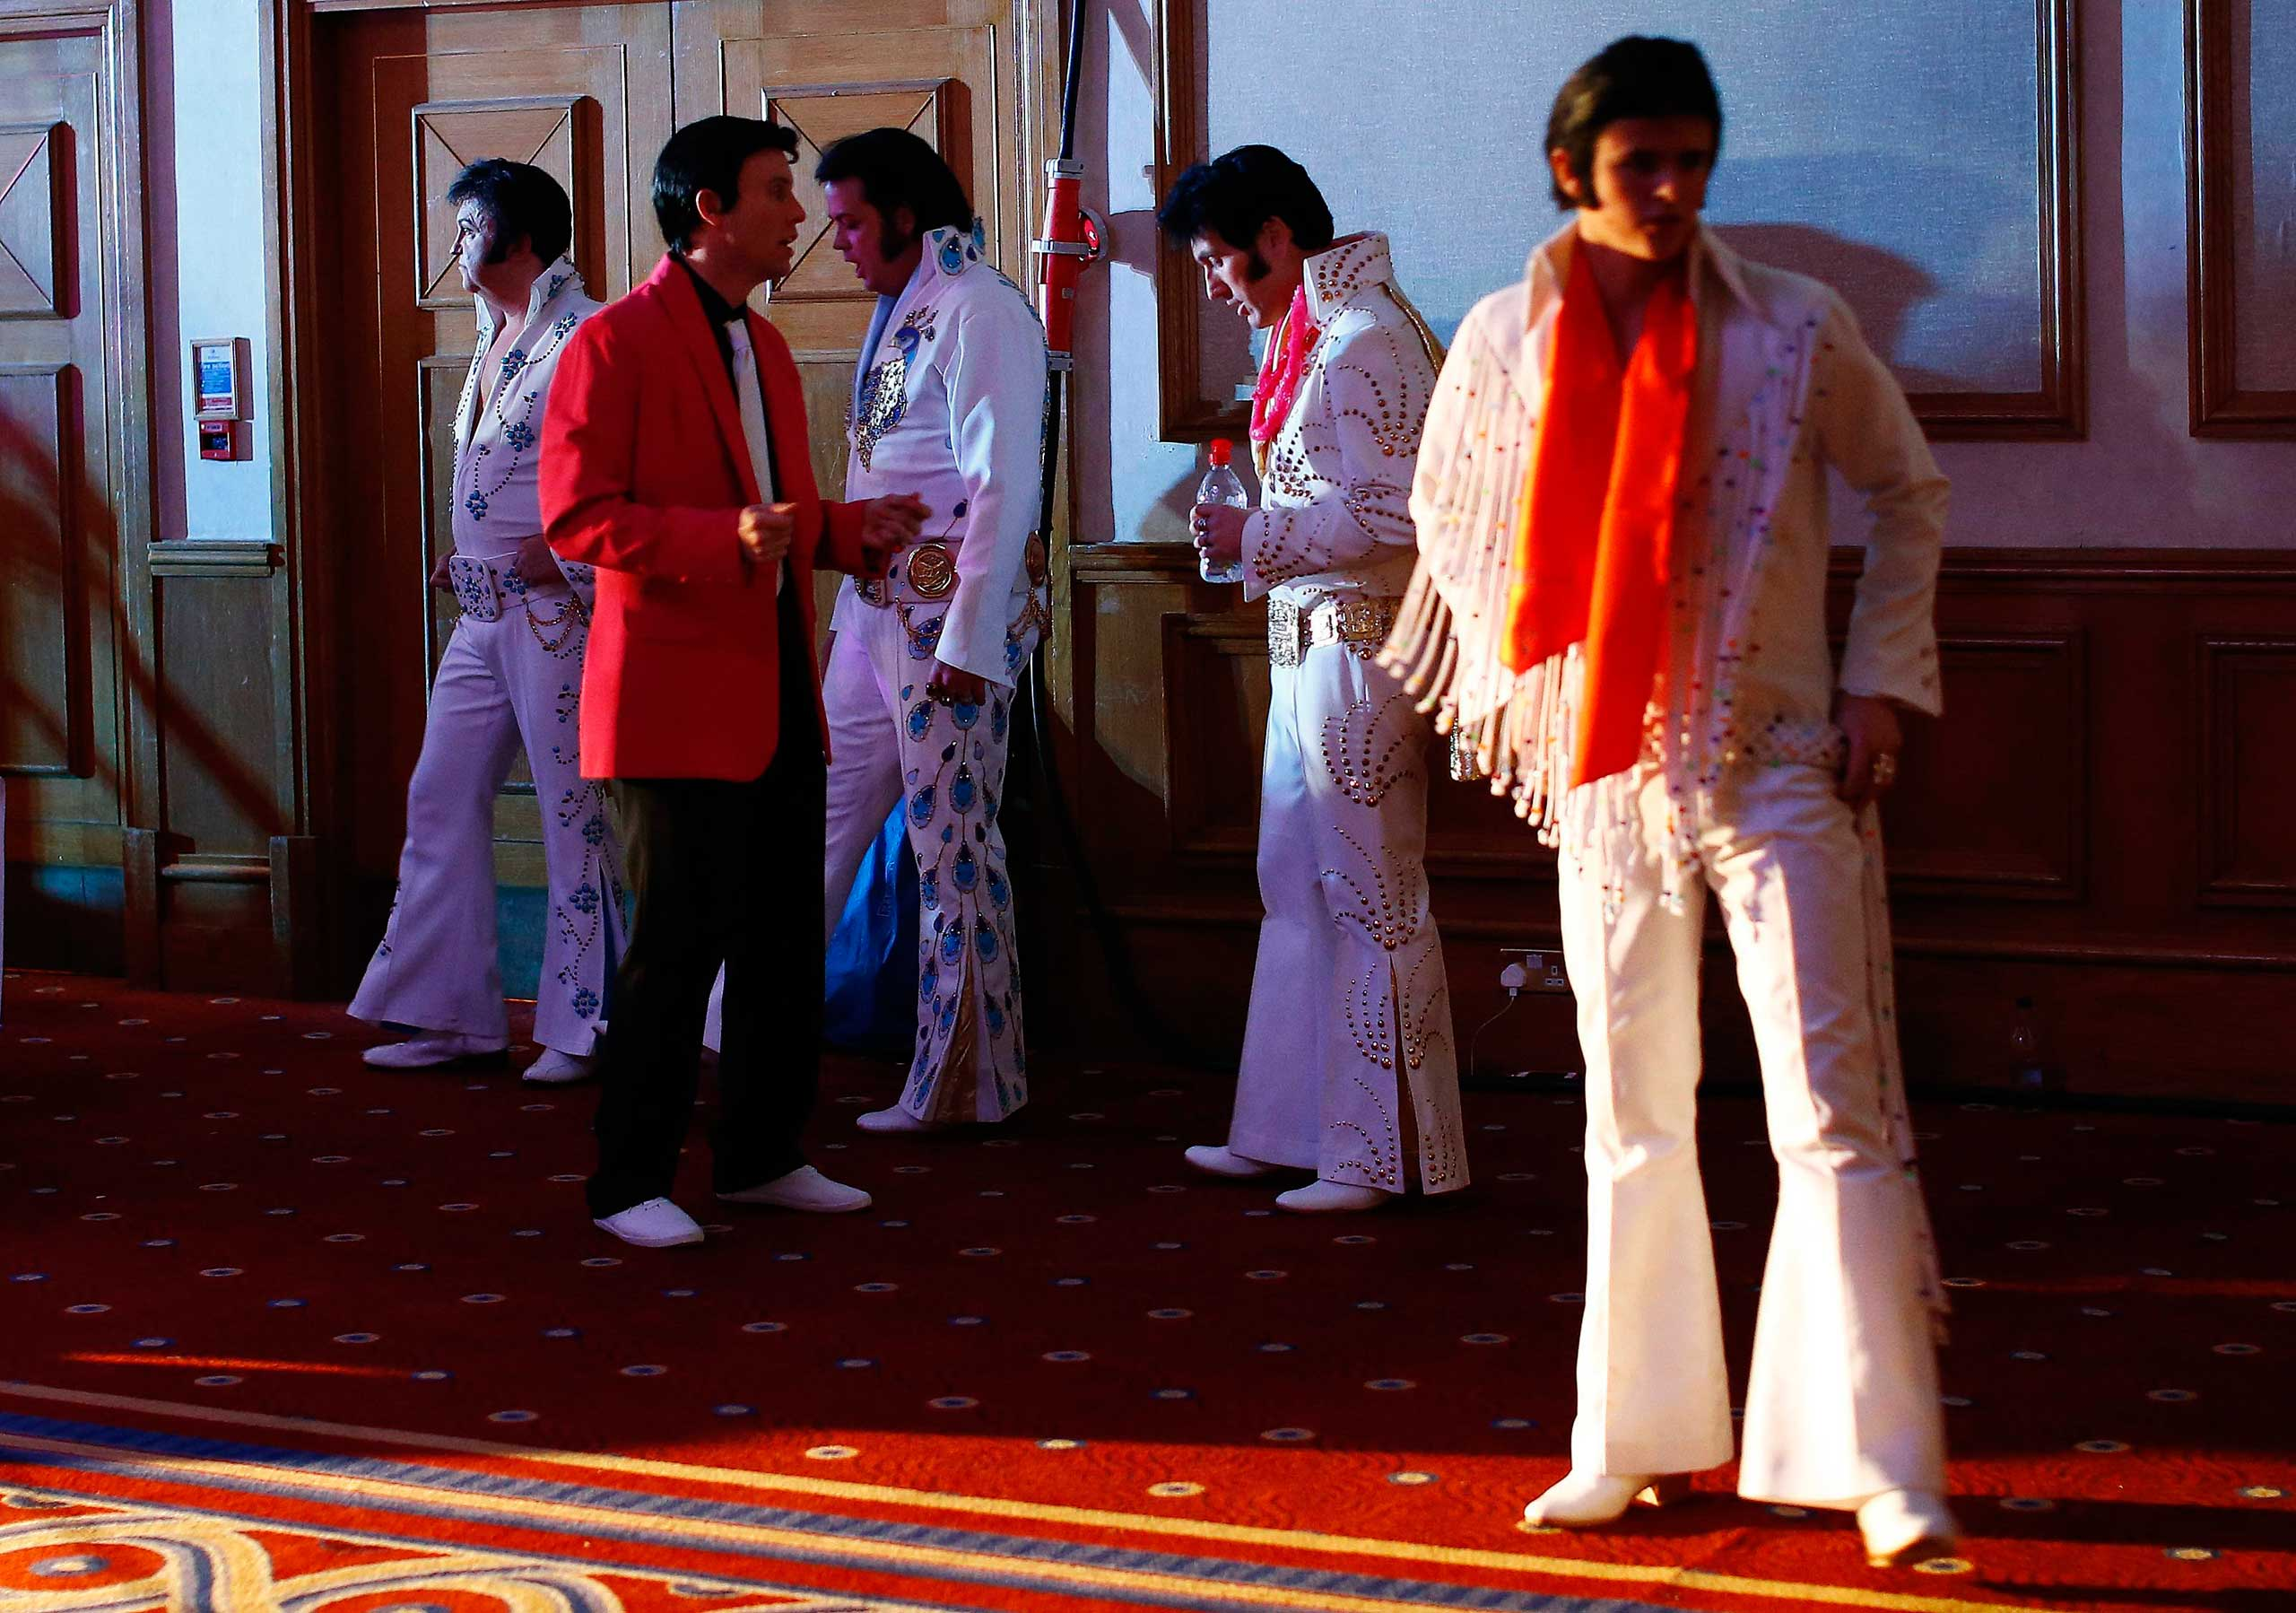 Jan. 4, 2015. Finalists wait backstage before their performances during the annual European Elvis Tribute Artist Contest and Convention in Birmingham, England.